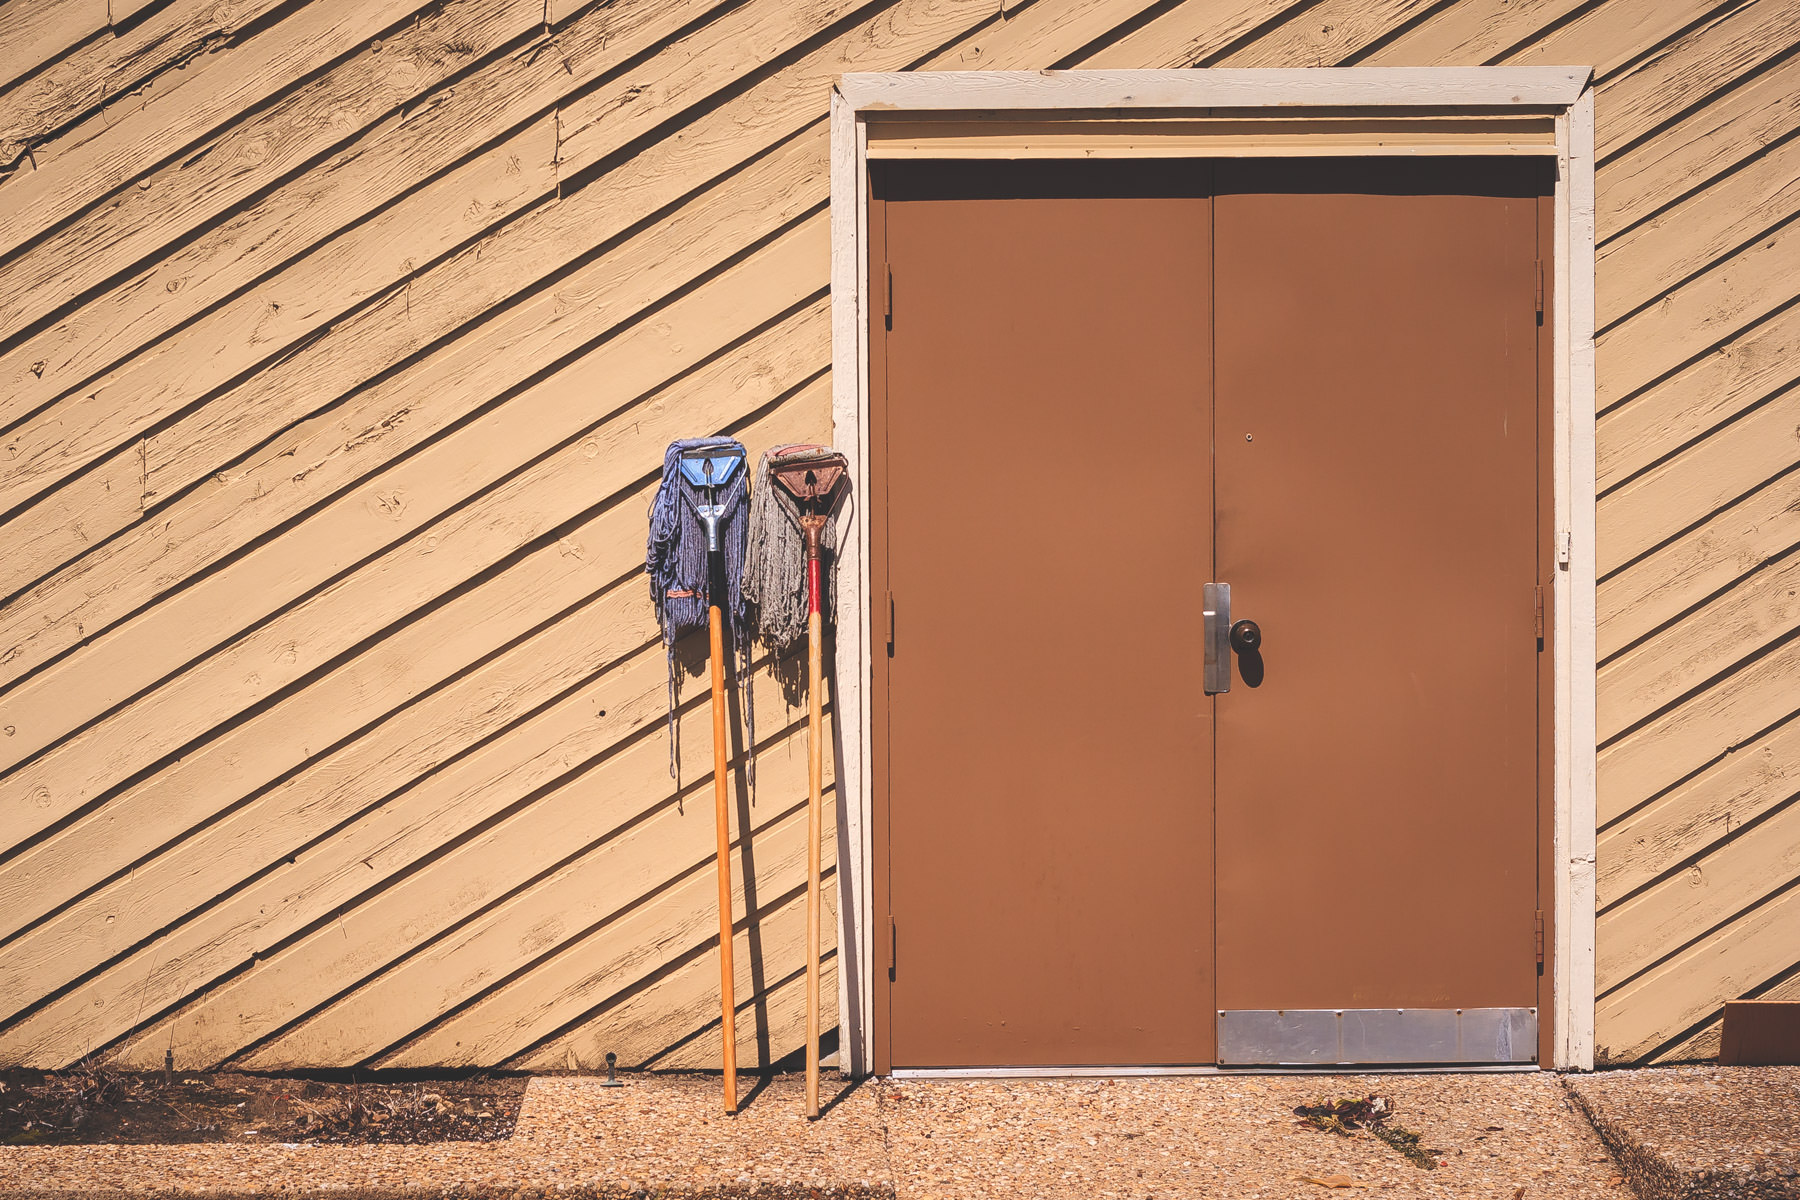 A pair of mops bake in the summer sun outside the backdoor of a business in Tyler, Texas.